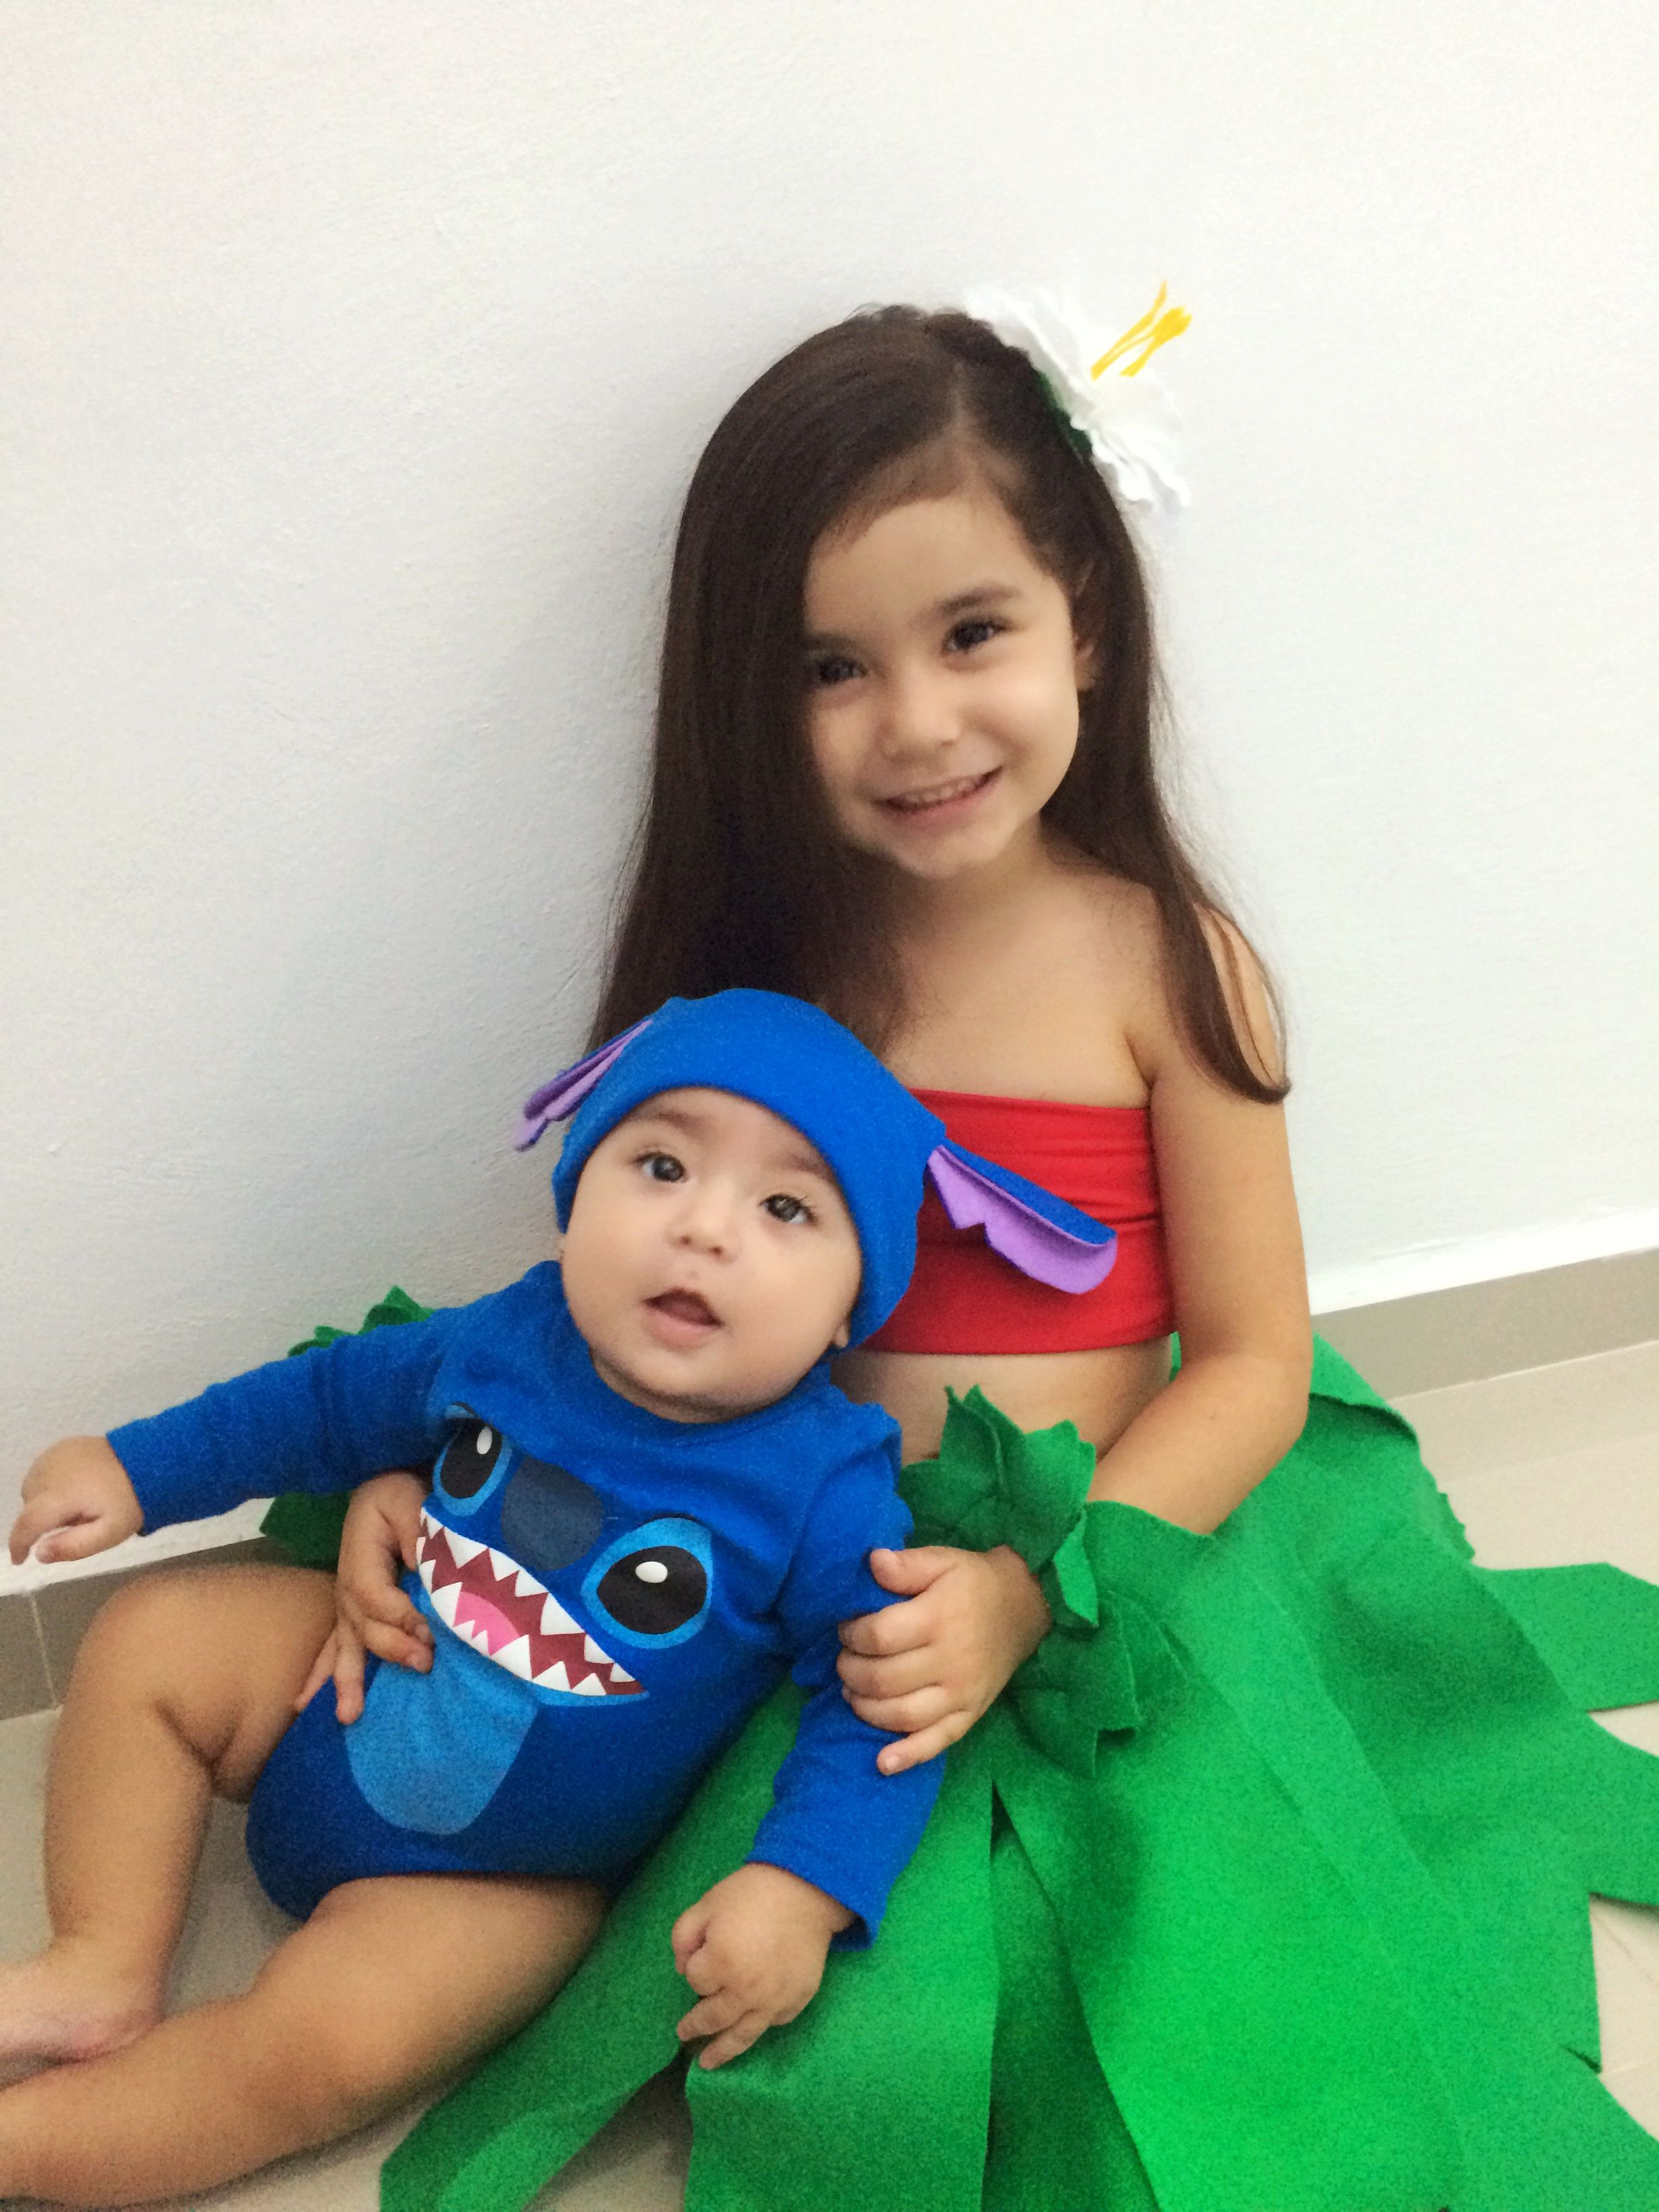 Siblings Brother And Sister Costume Lilo And Stitch Sister Halloween Costumes Toddler Halloween Costumes Brother Halloween Costumes